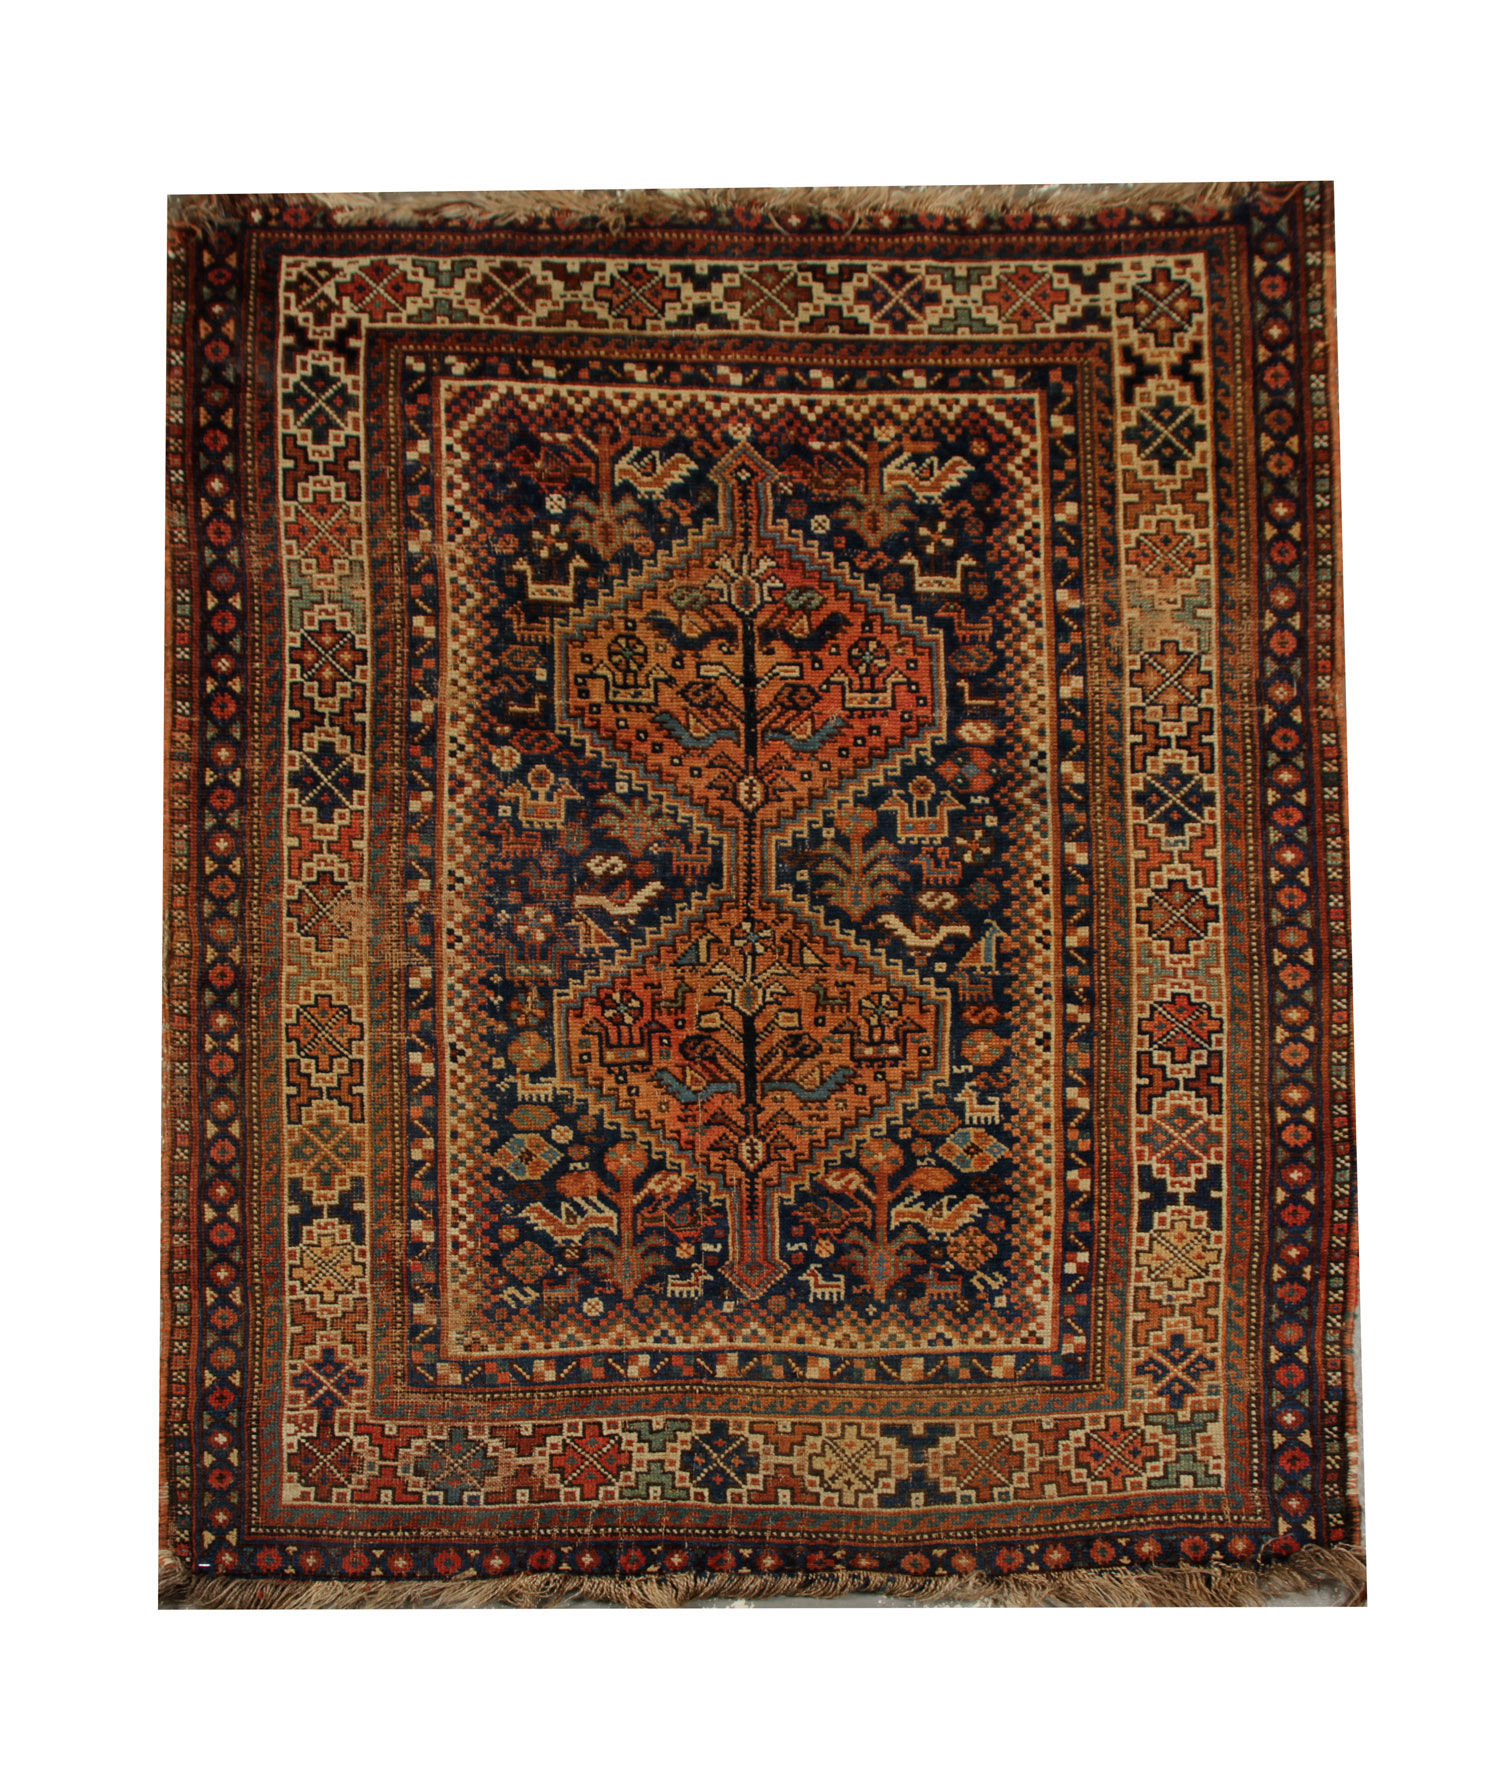 Antique Carpet Persian Hand Woven Rug Tribal Rug By